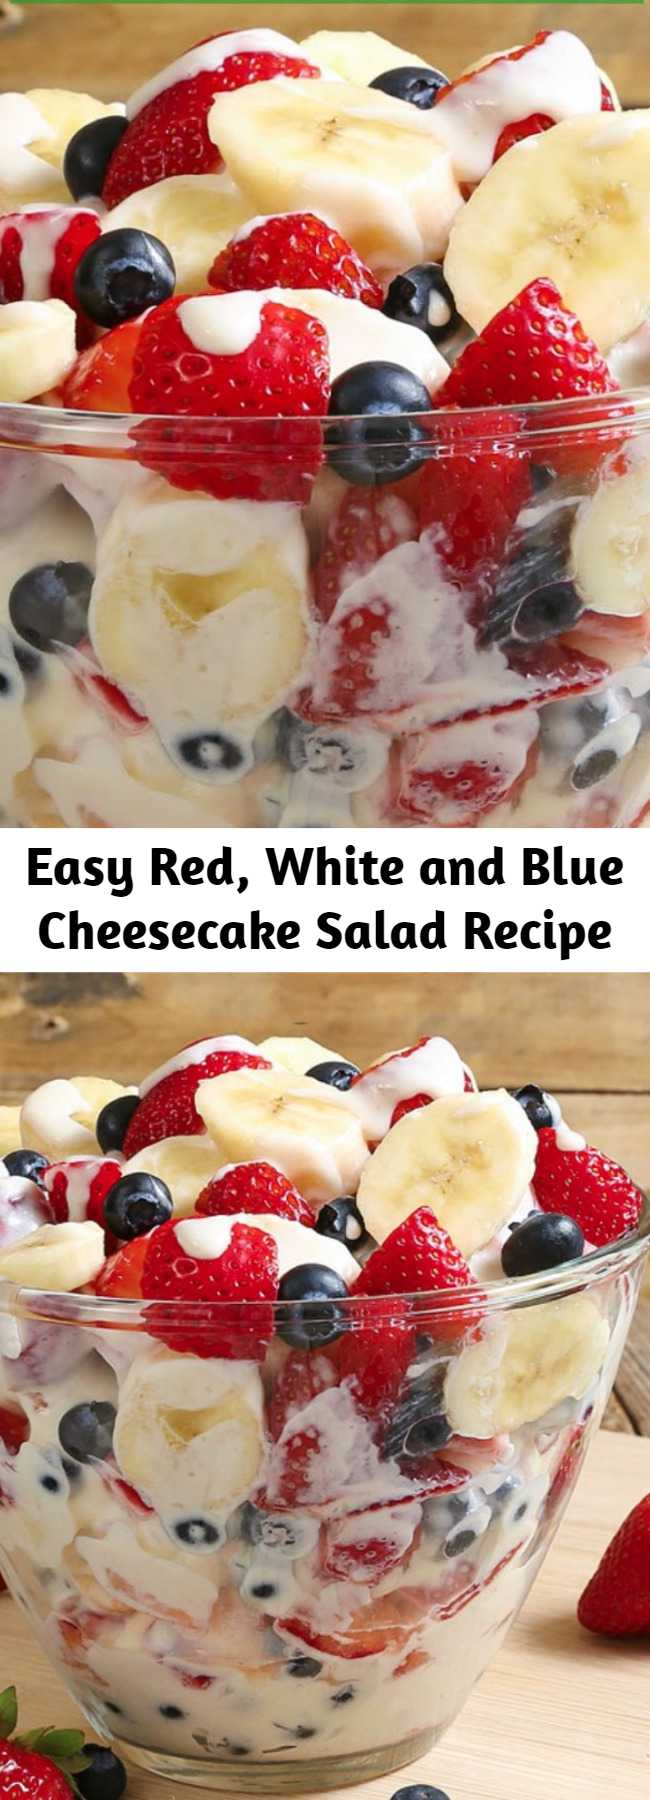 Easy Red, White and Blue Cheesecake Salad Recipe - Red, White and Blue Cheesecake Salad comes together so easy with fresh fruit and a rich and creamy cheesecake filling to create the most glorious fruit salad ever! Every bite is absolutely bursting with summer flavor and you are going to go nuts over this recipe! #CheesecakeSalad #FruitSalad #SummerDessert